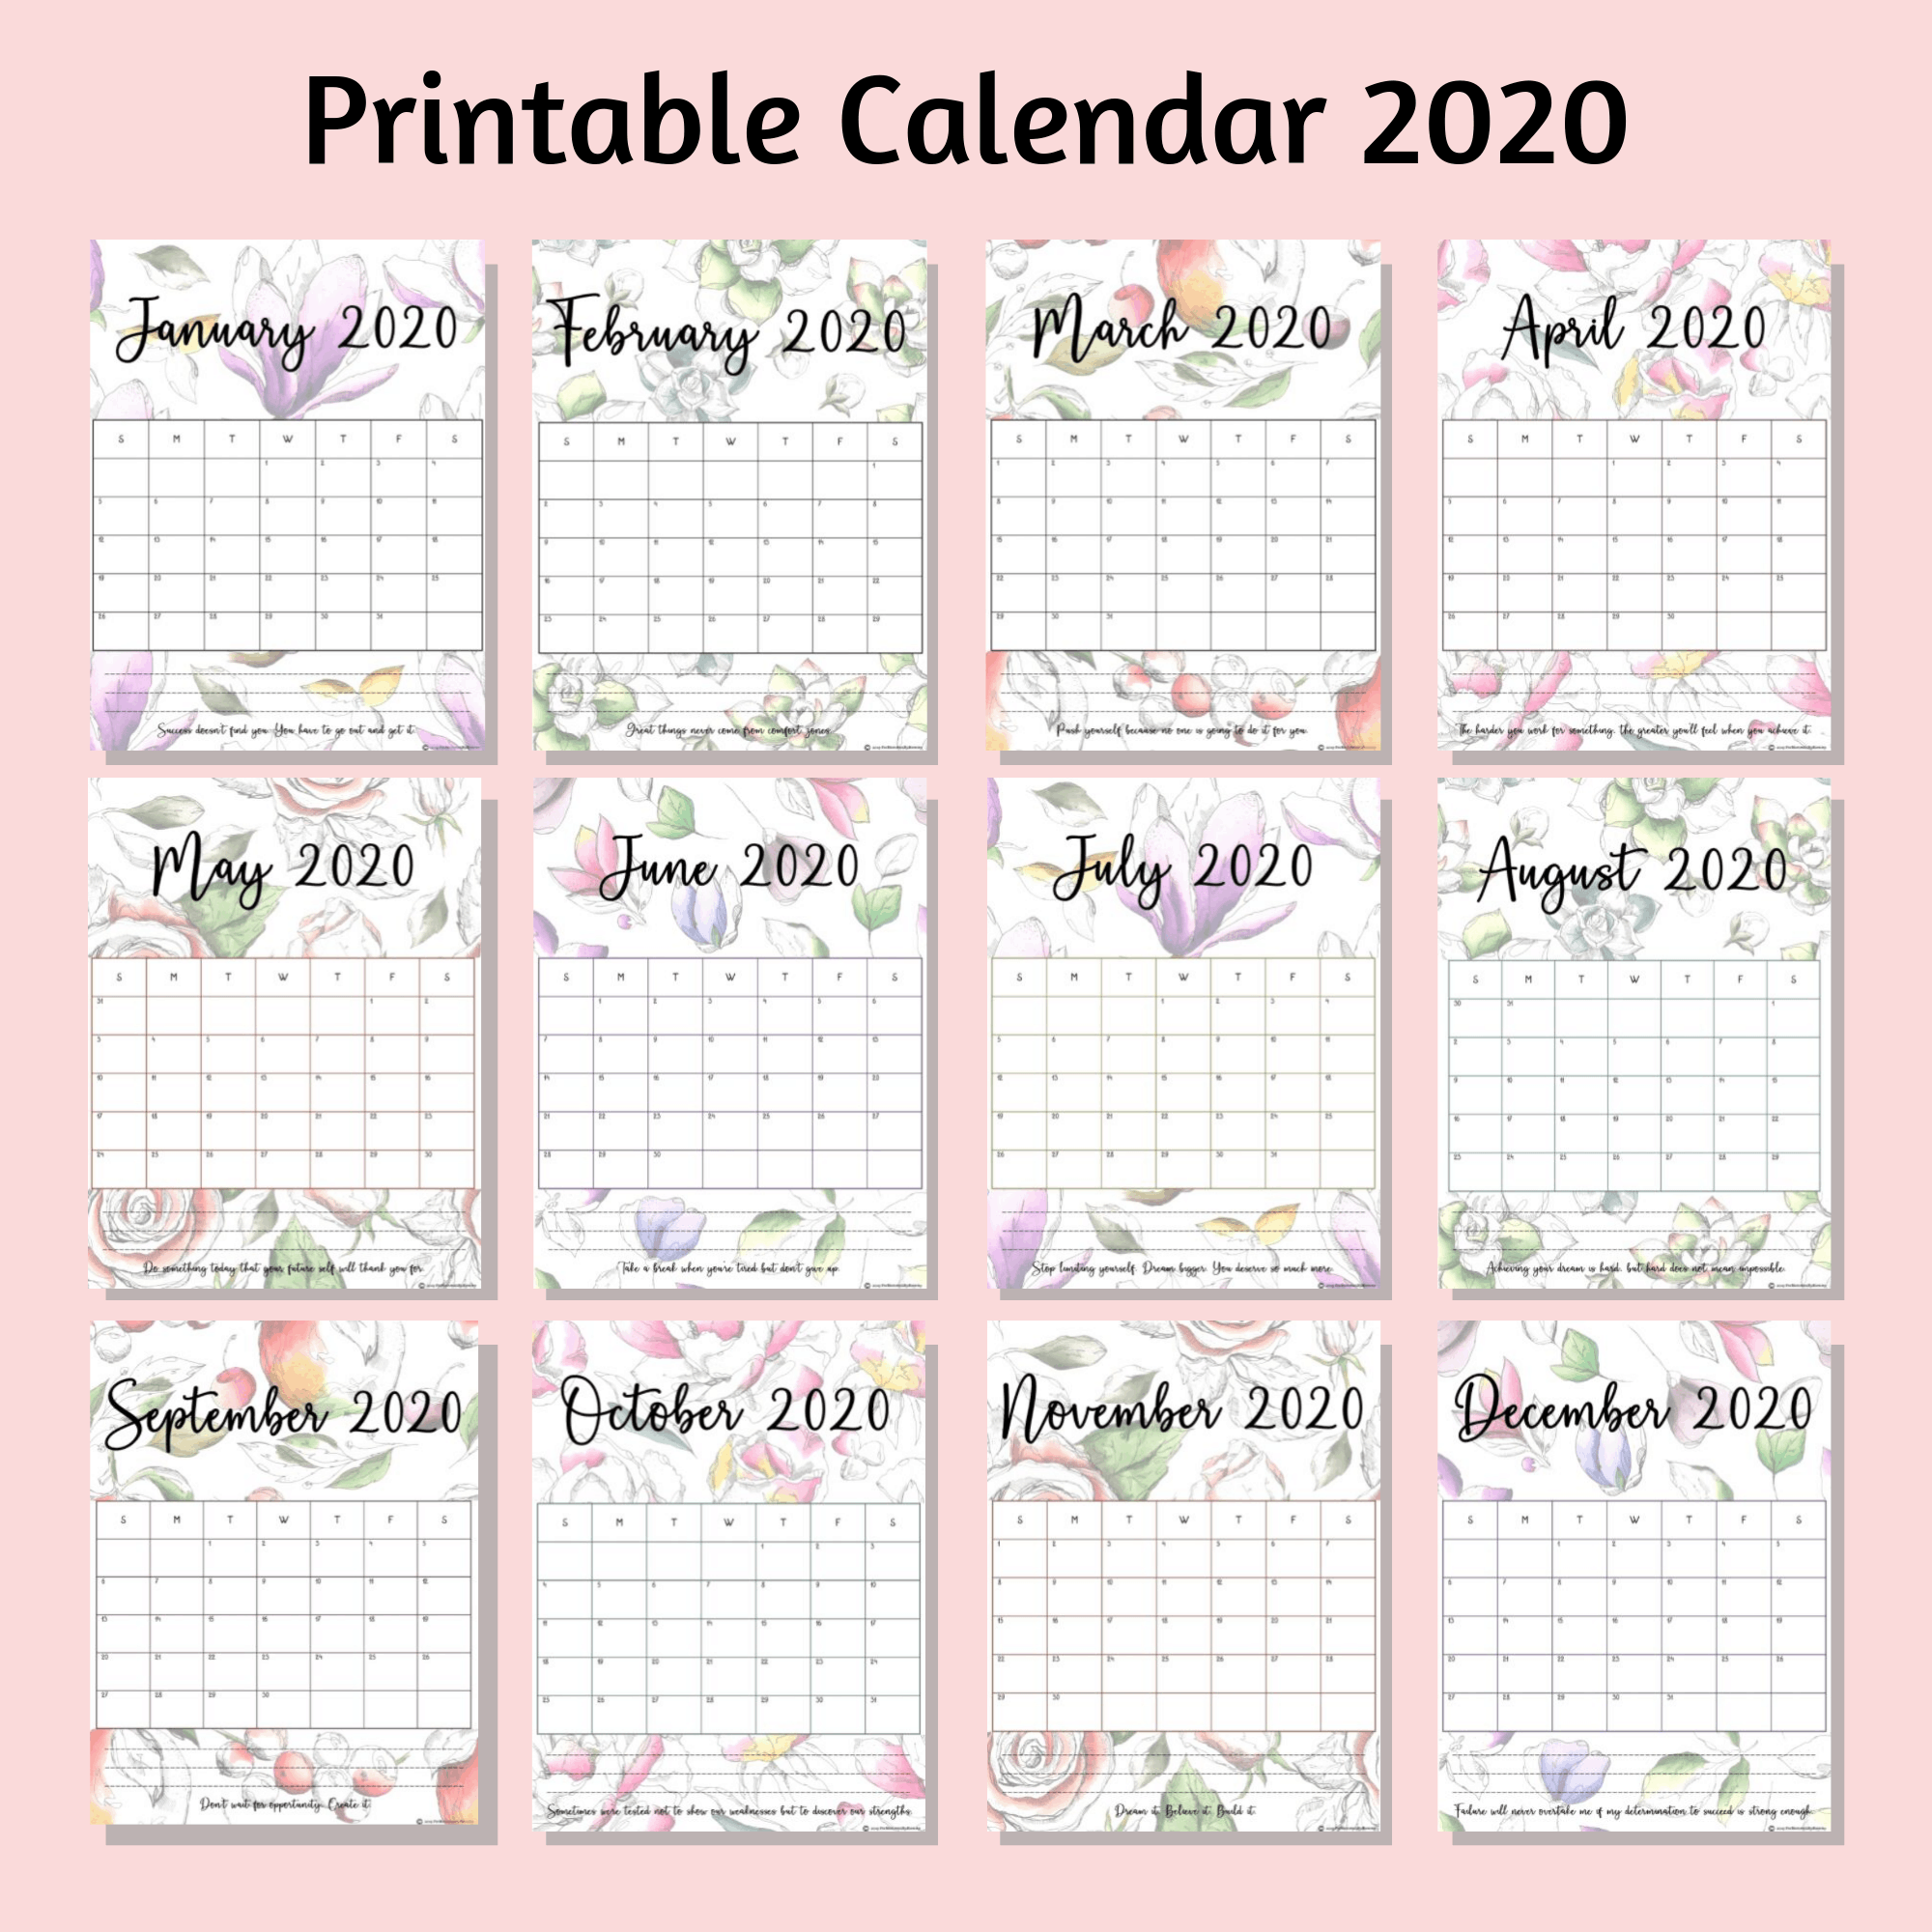 Printable Calendar In Beautiful Floral Designs